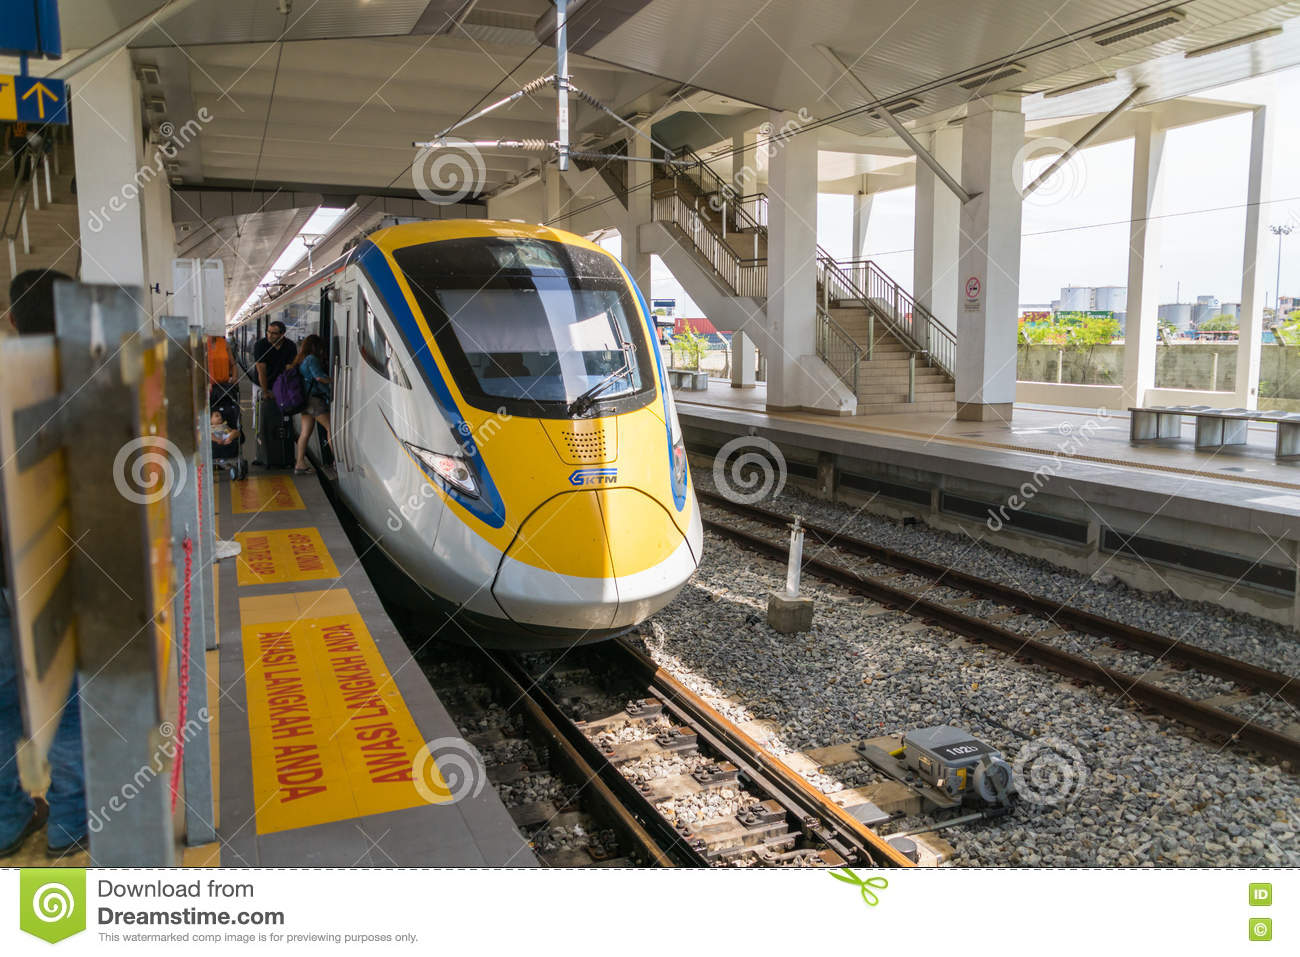 ktm ets train in penang malaysia editorial stock photo image of